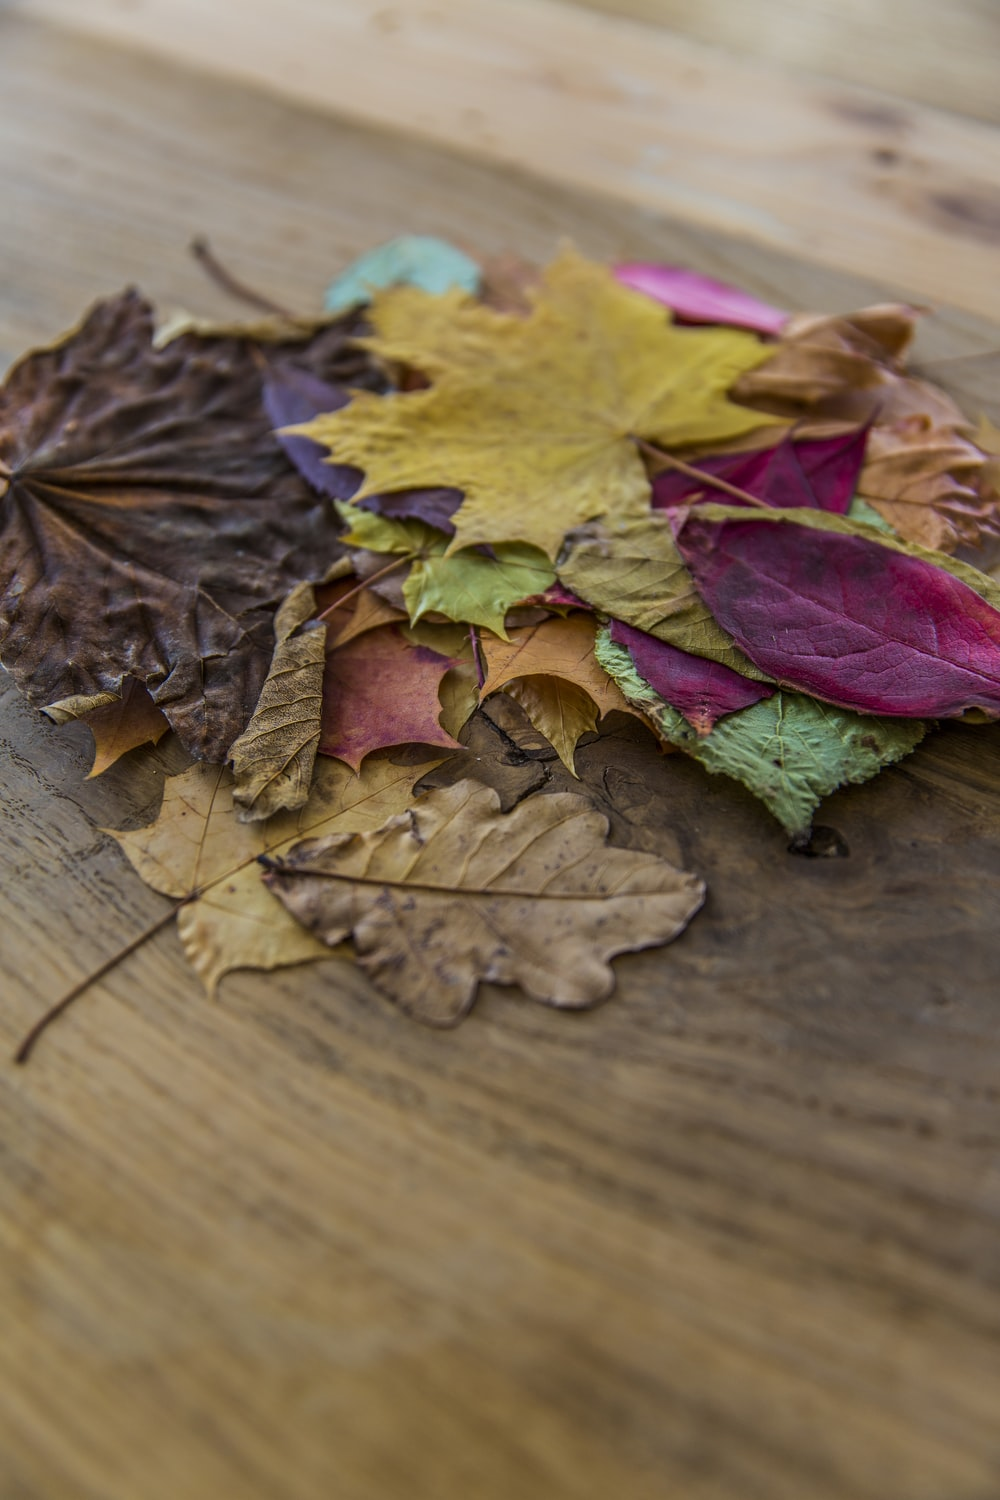 assorted-color leaves on brown surface